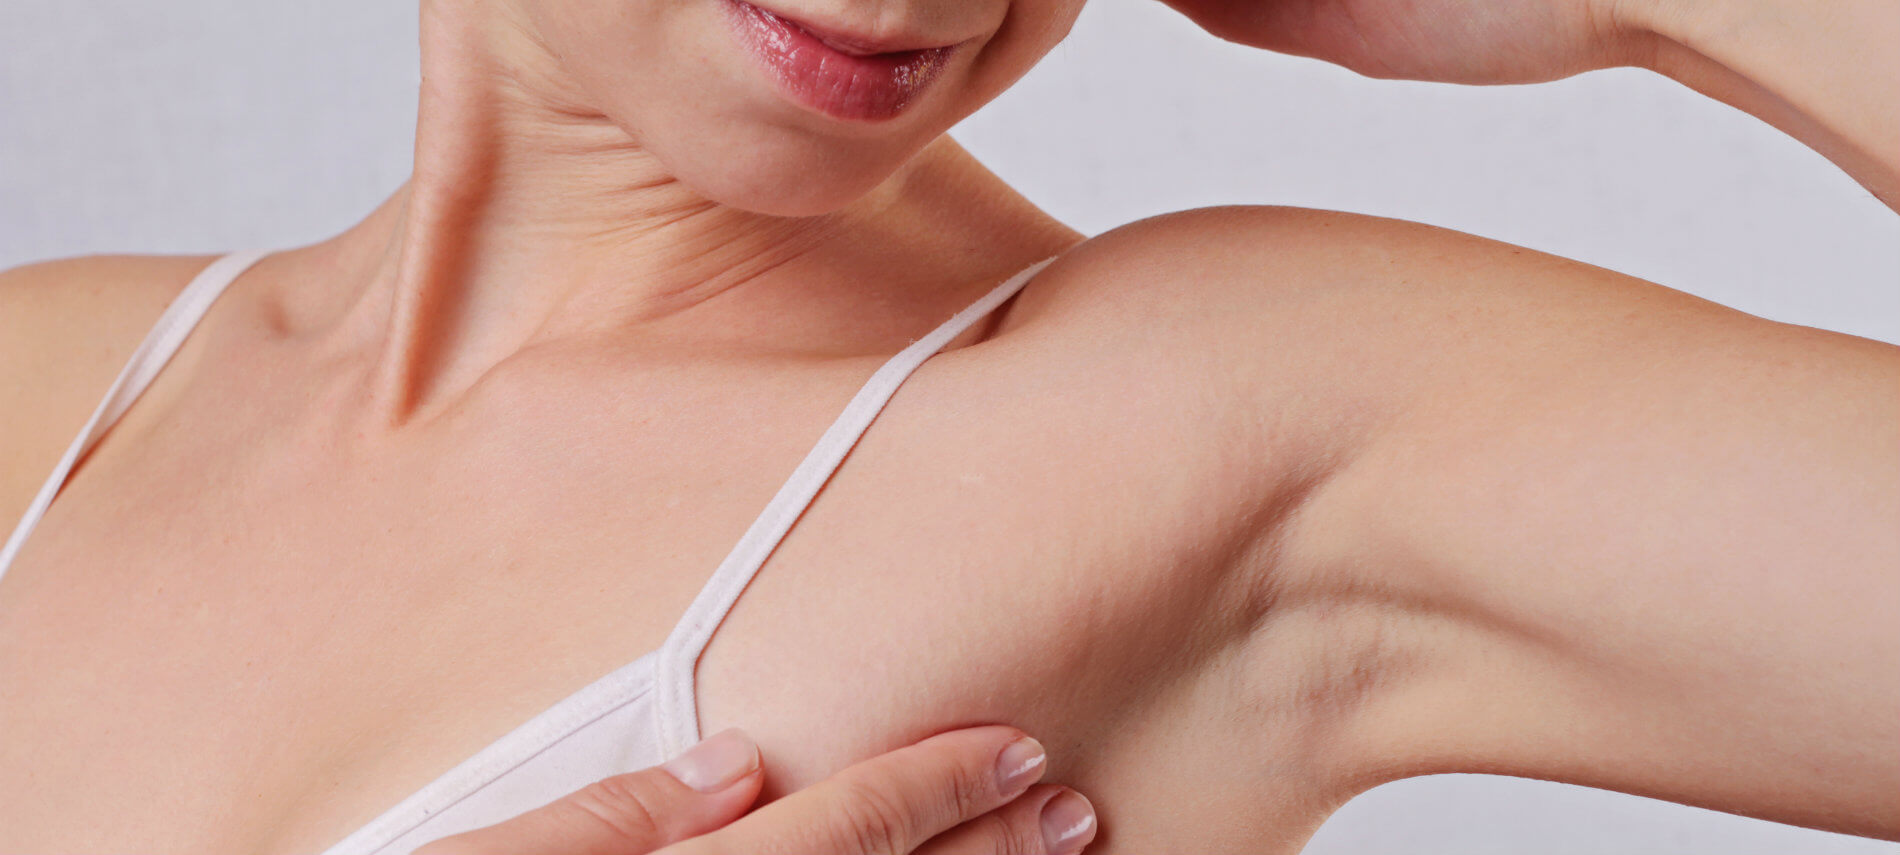 A woman holds the skin around her armpit as she examines the hair treatment and smooth skin.